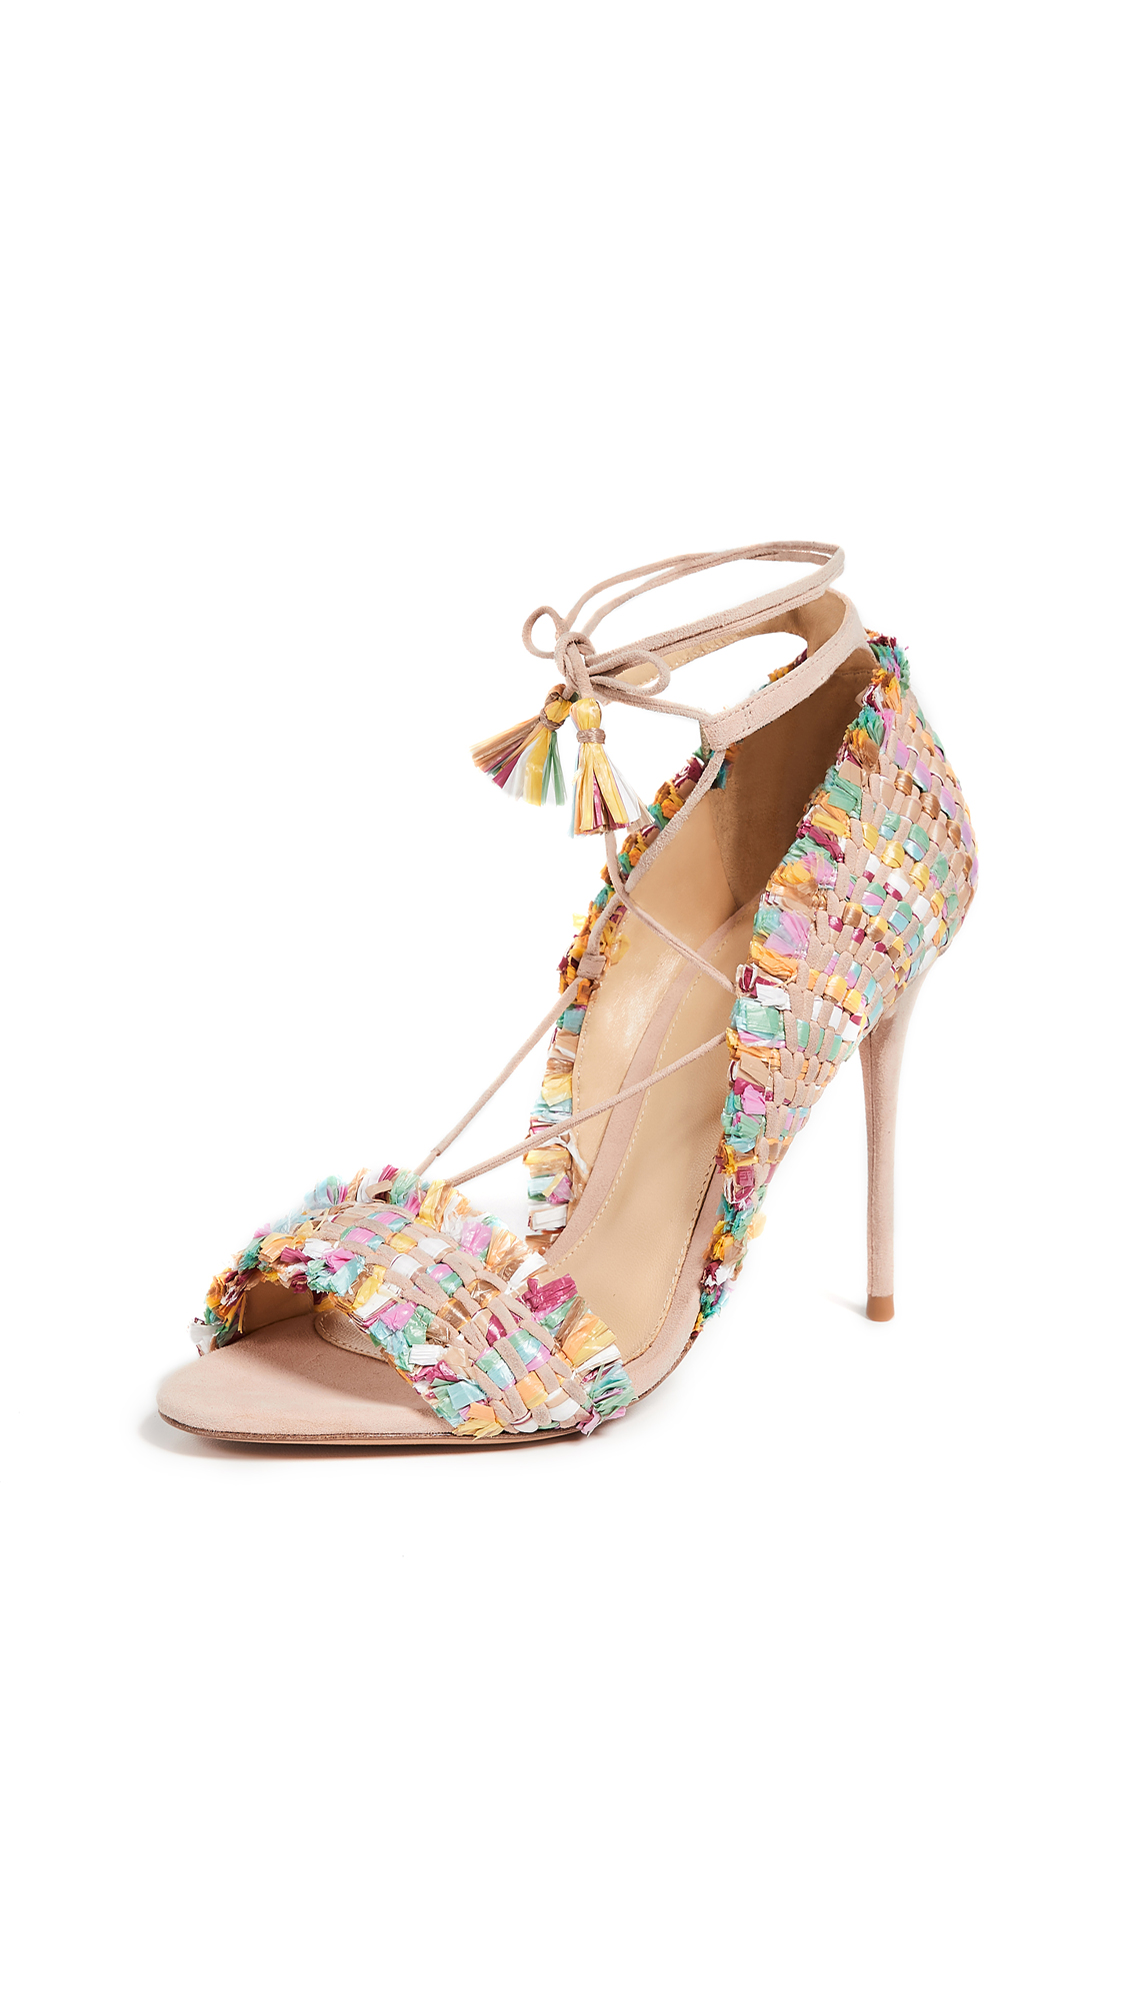 Alexandre Birman Maracatu Sandals - Light Sand/Multicolor